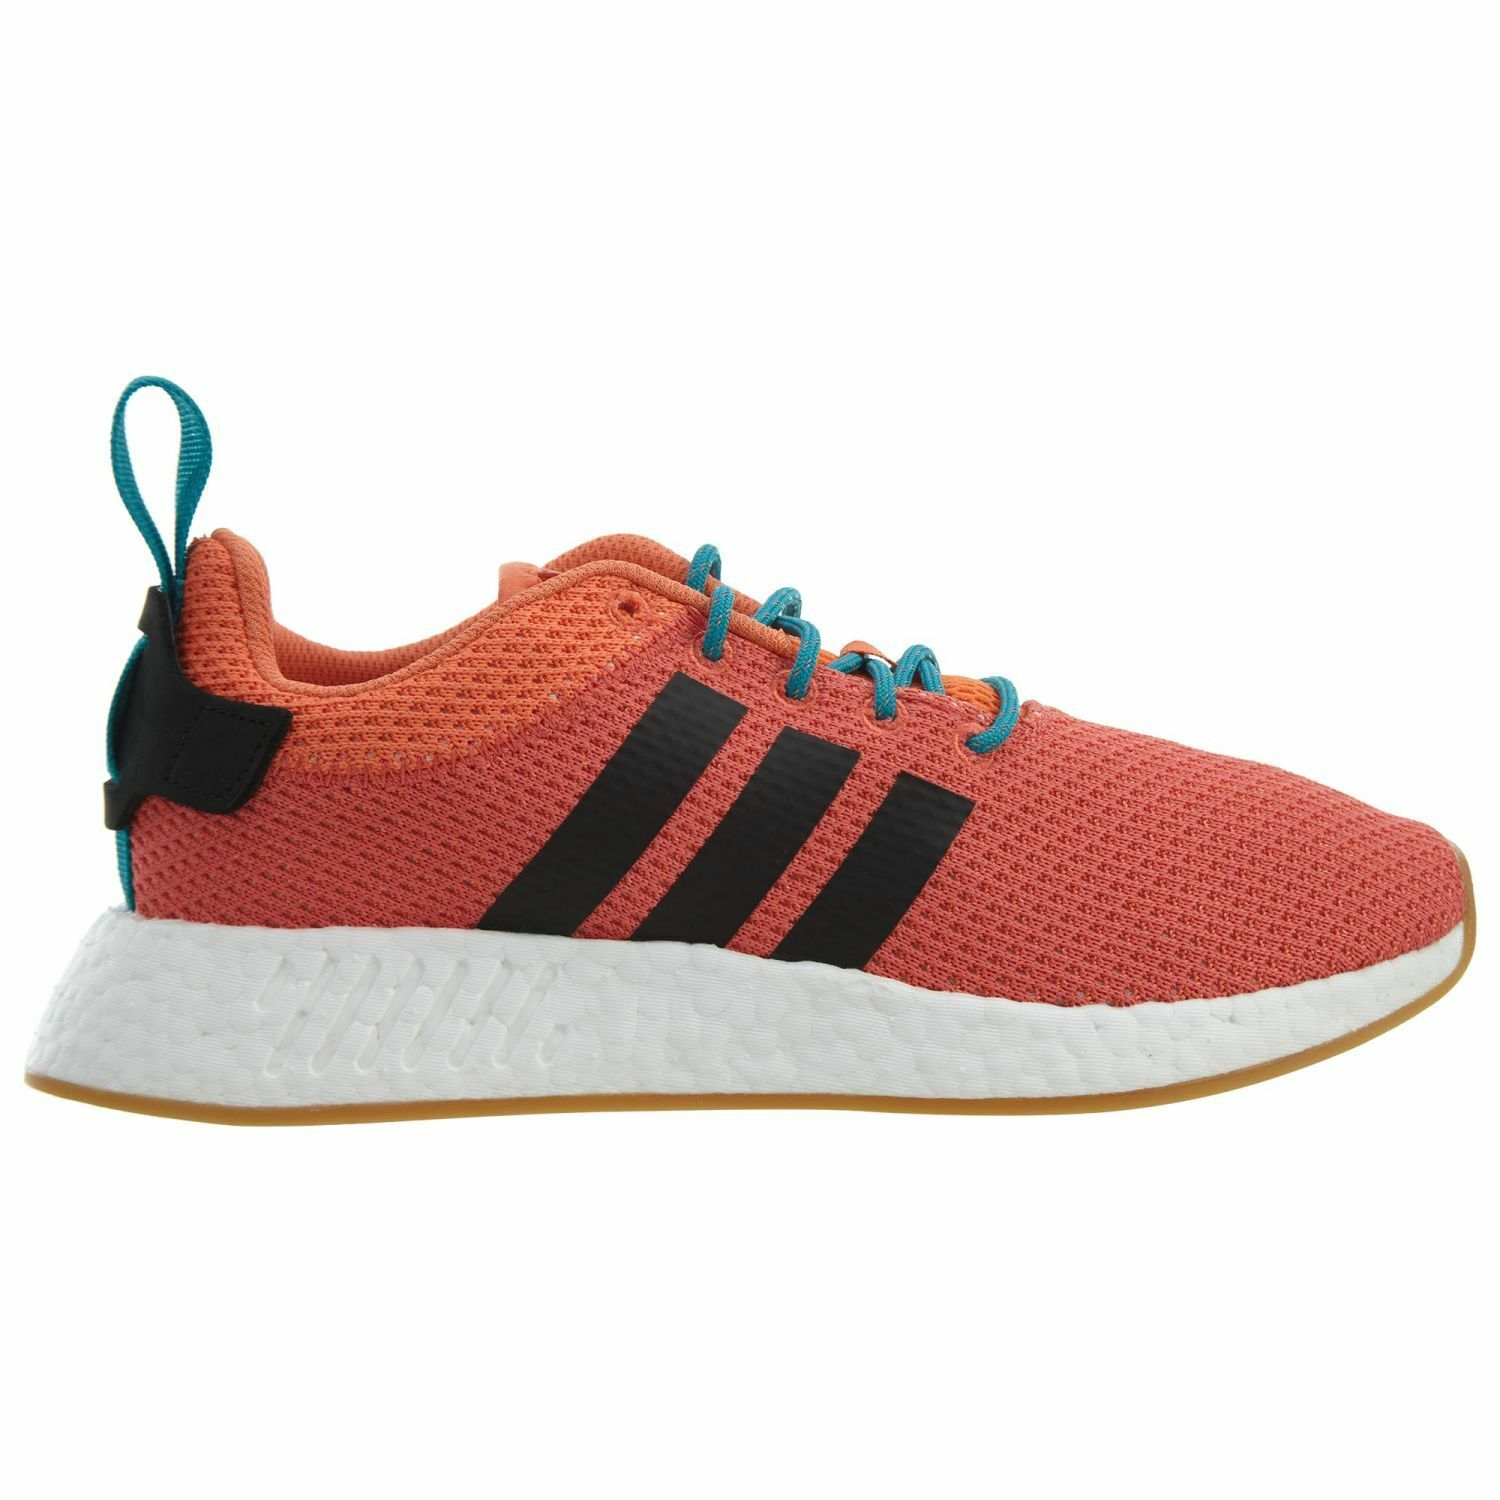 Adidas NMD_R2 Summer Mens CQ3081 Trace Orange Knit Boost Running Shoes Size 10